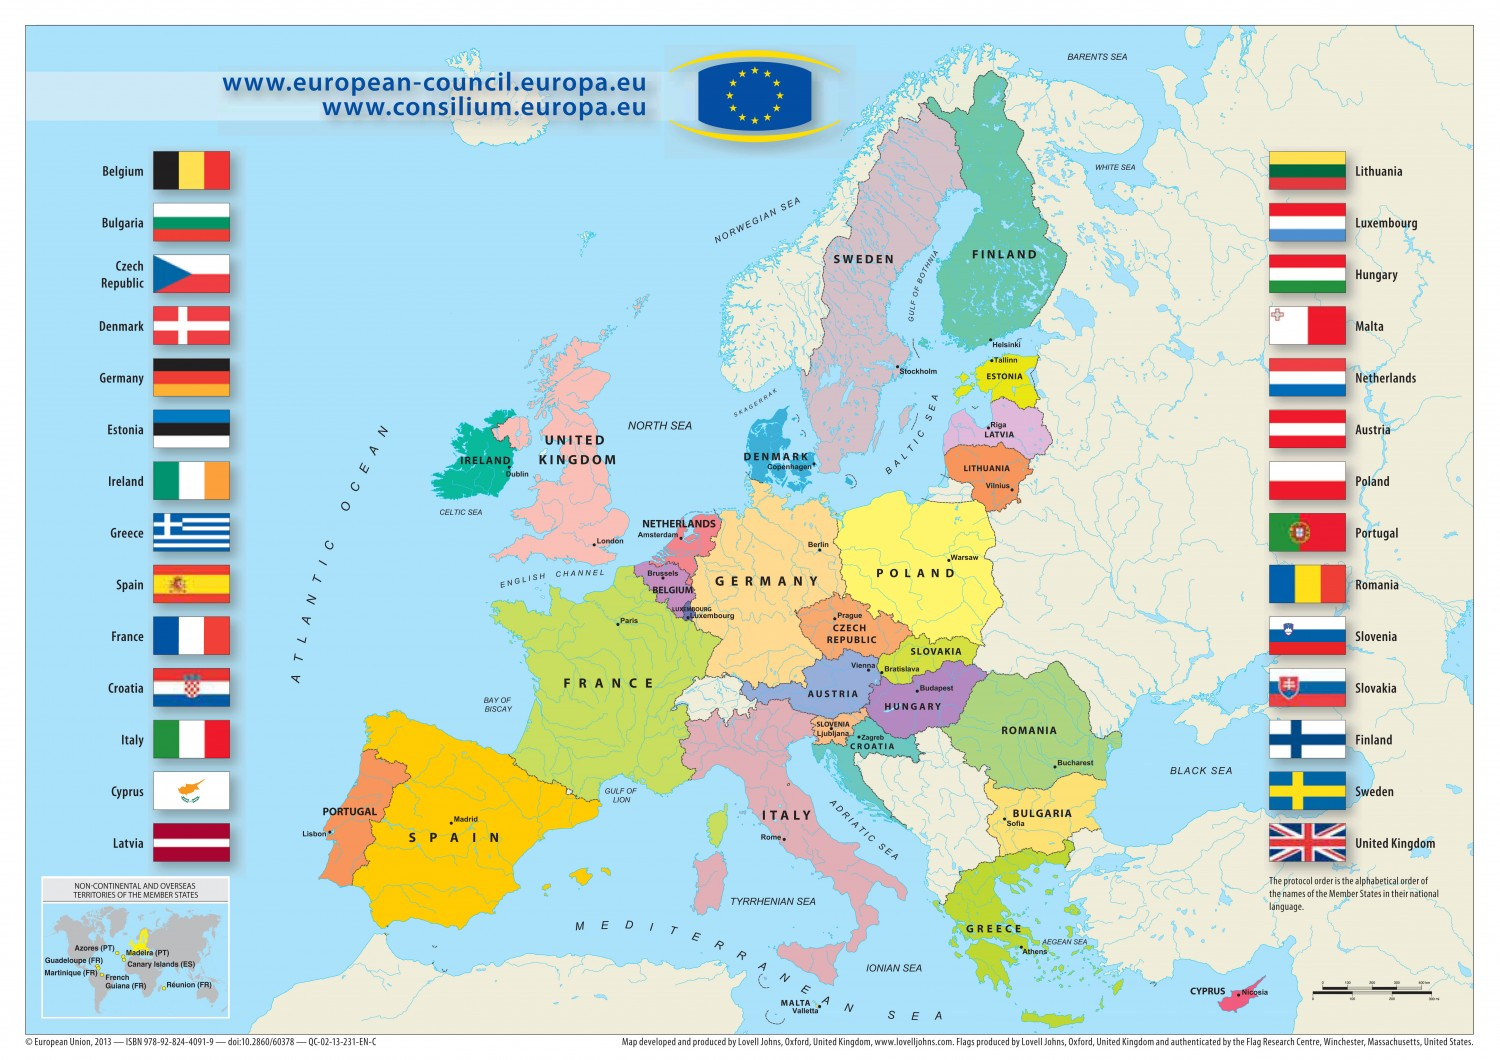 europa kart 2014 Historical Maps of Europe europa kart 2014